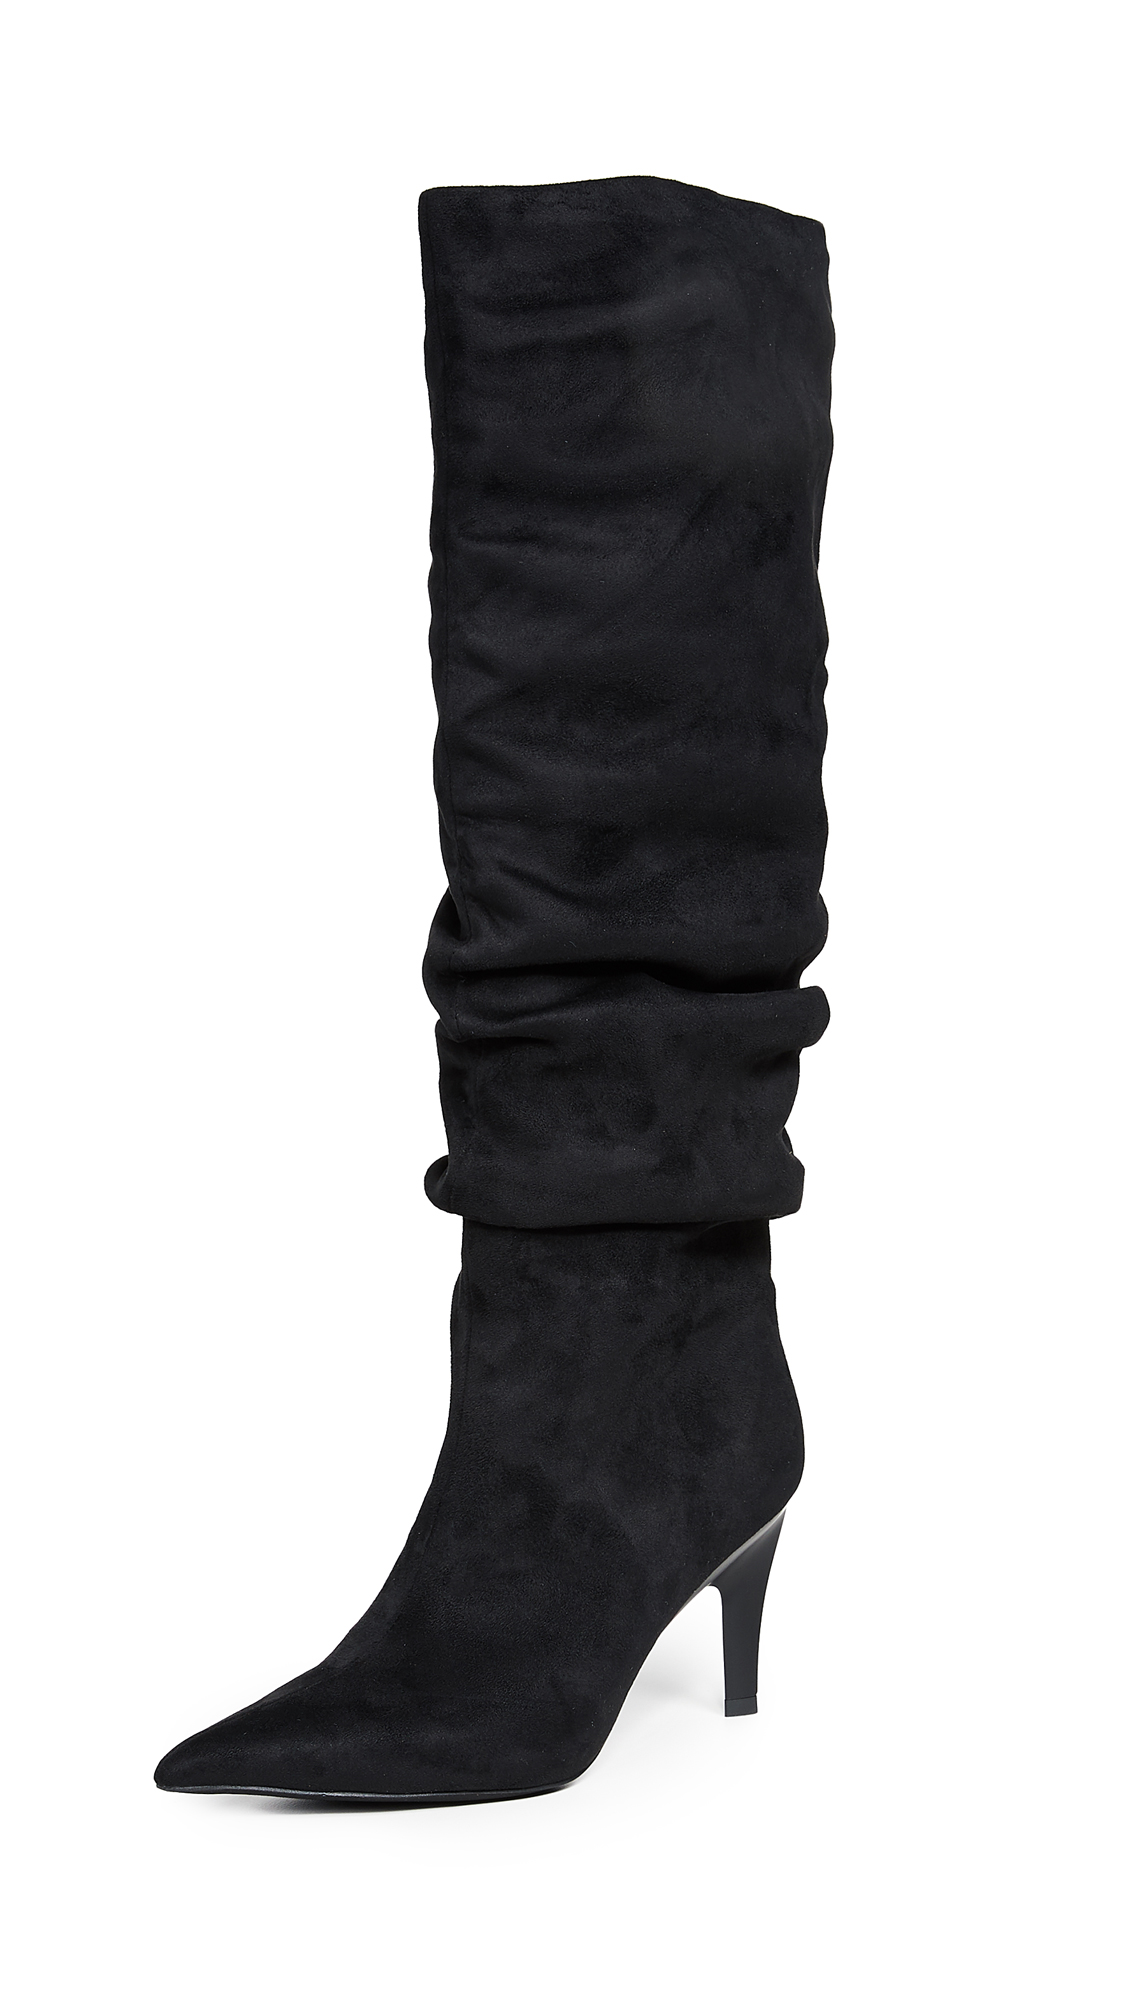 Jeffrey Campbell Brutish Point Toe Boots - Black